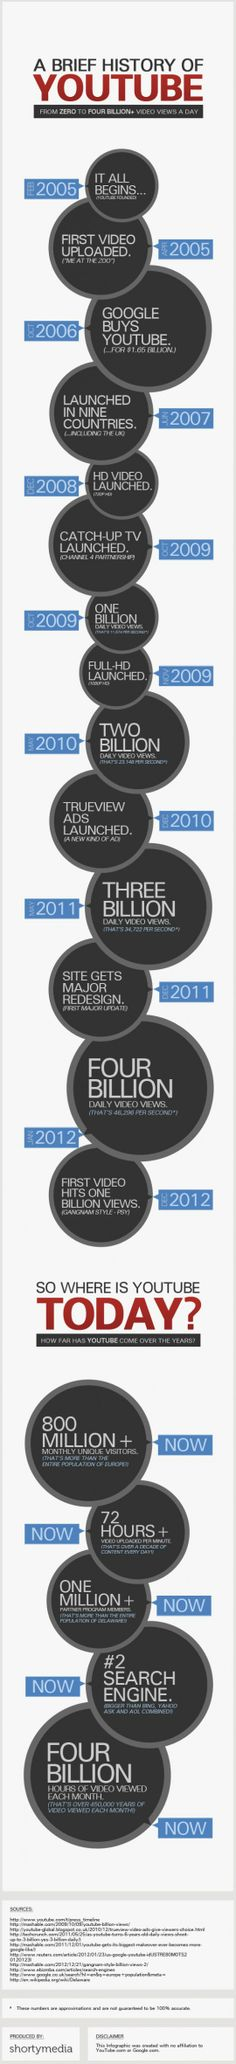 A Brief History of YouTube #youtube #history http://andylockhart.com/youtube-0-4-billion